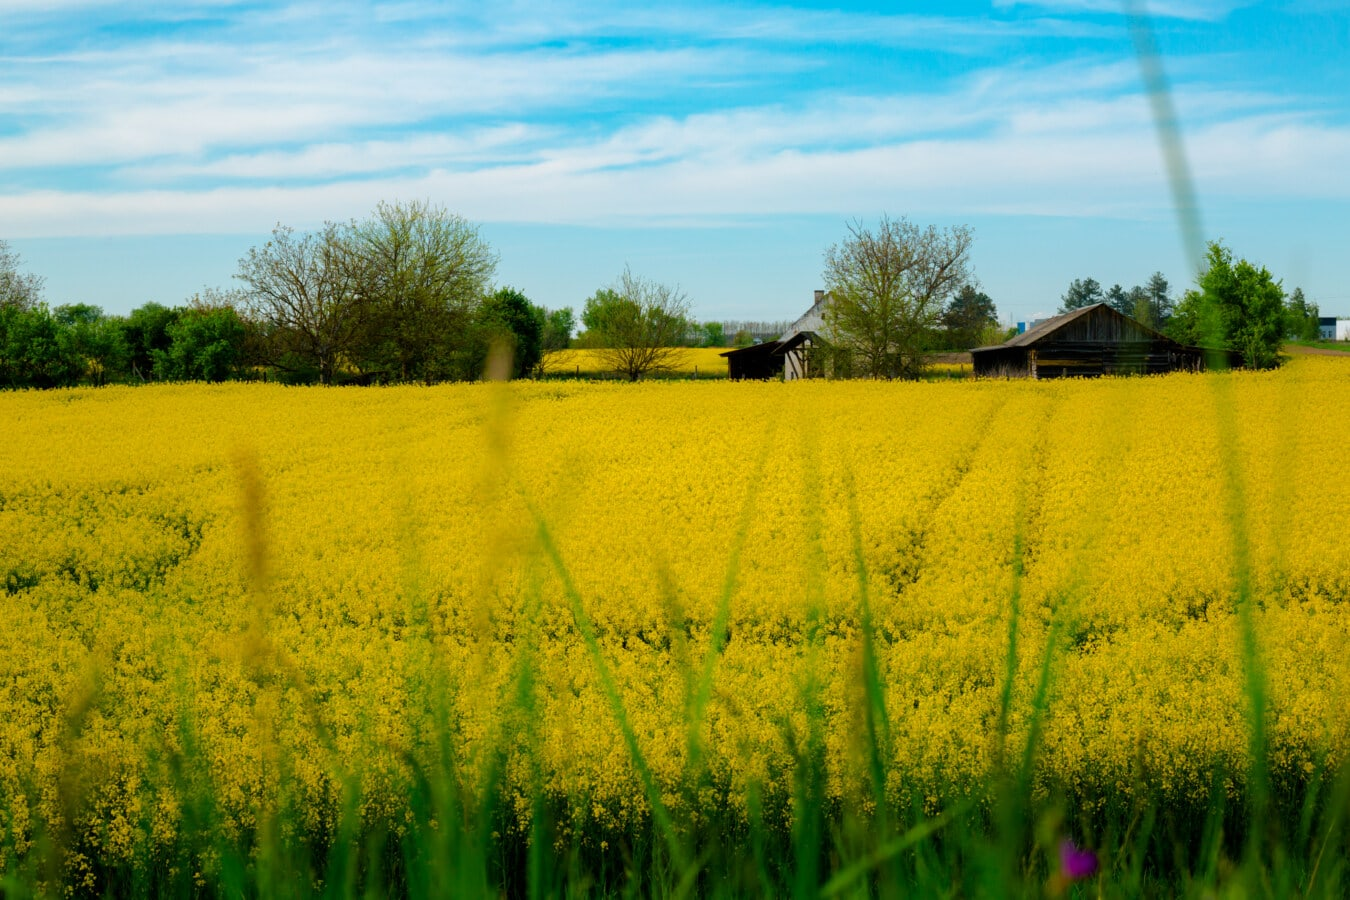 agriculture, rapeseed, yellowish, field, farmhouse, farm, ranch, meadow, rural, landscape